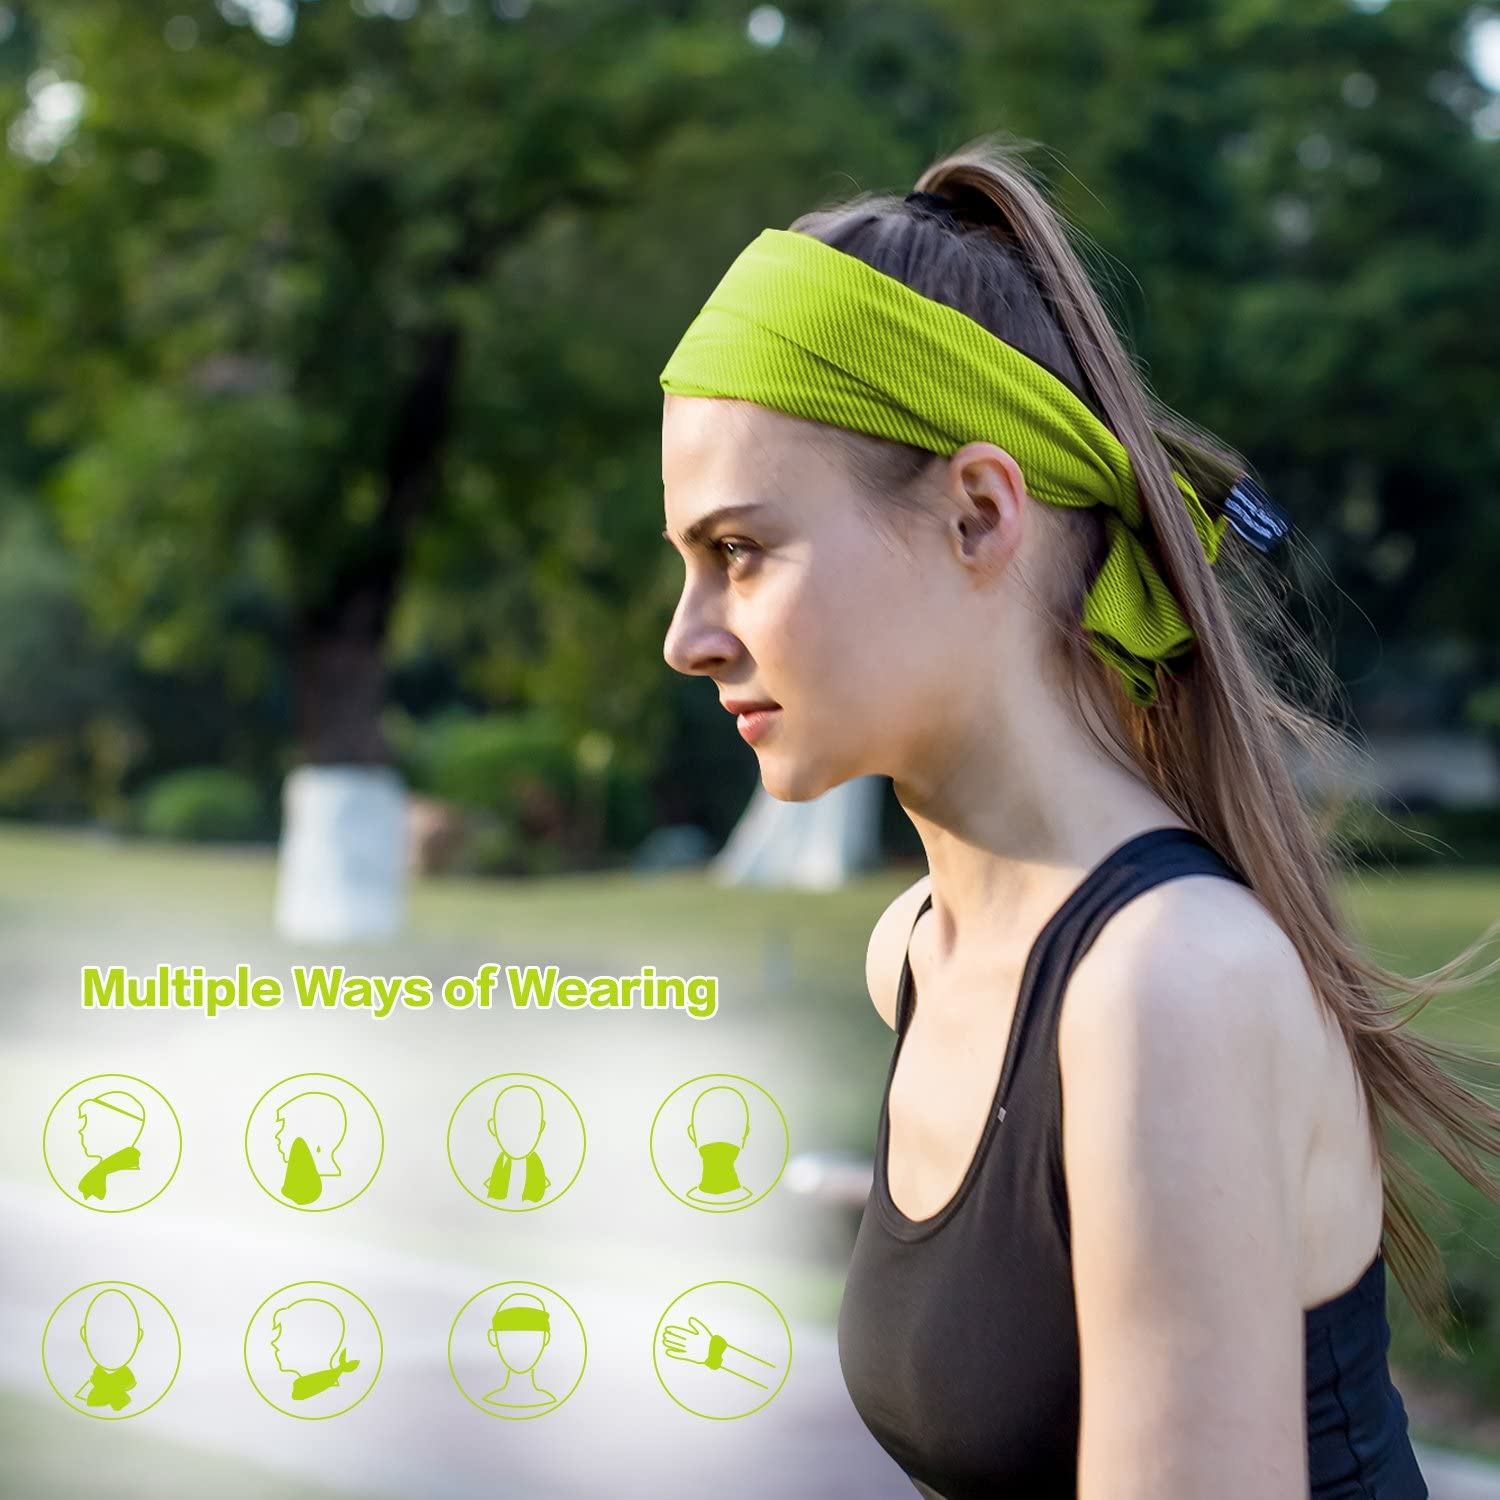 Travel Camping Fitness Yoga Bowling Gym Your Choice Cooling Towel Workout Golf Outdoor Sports Towel for Instant Cooling Relief Hiking